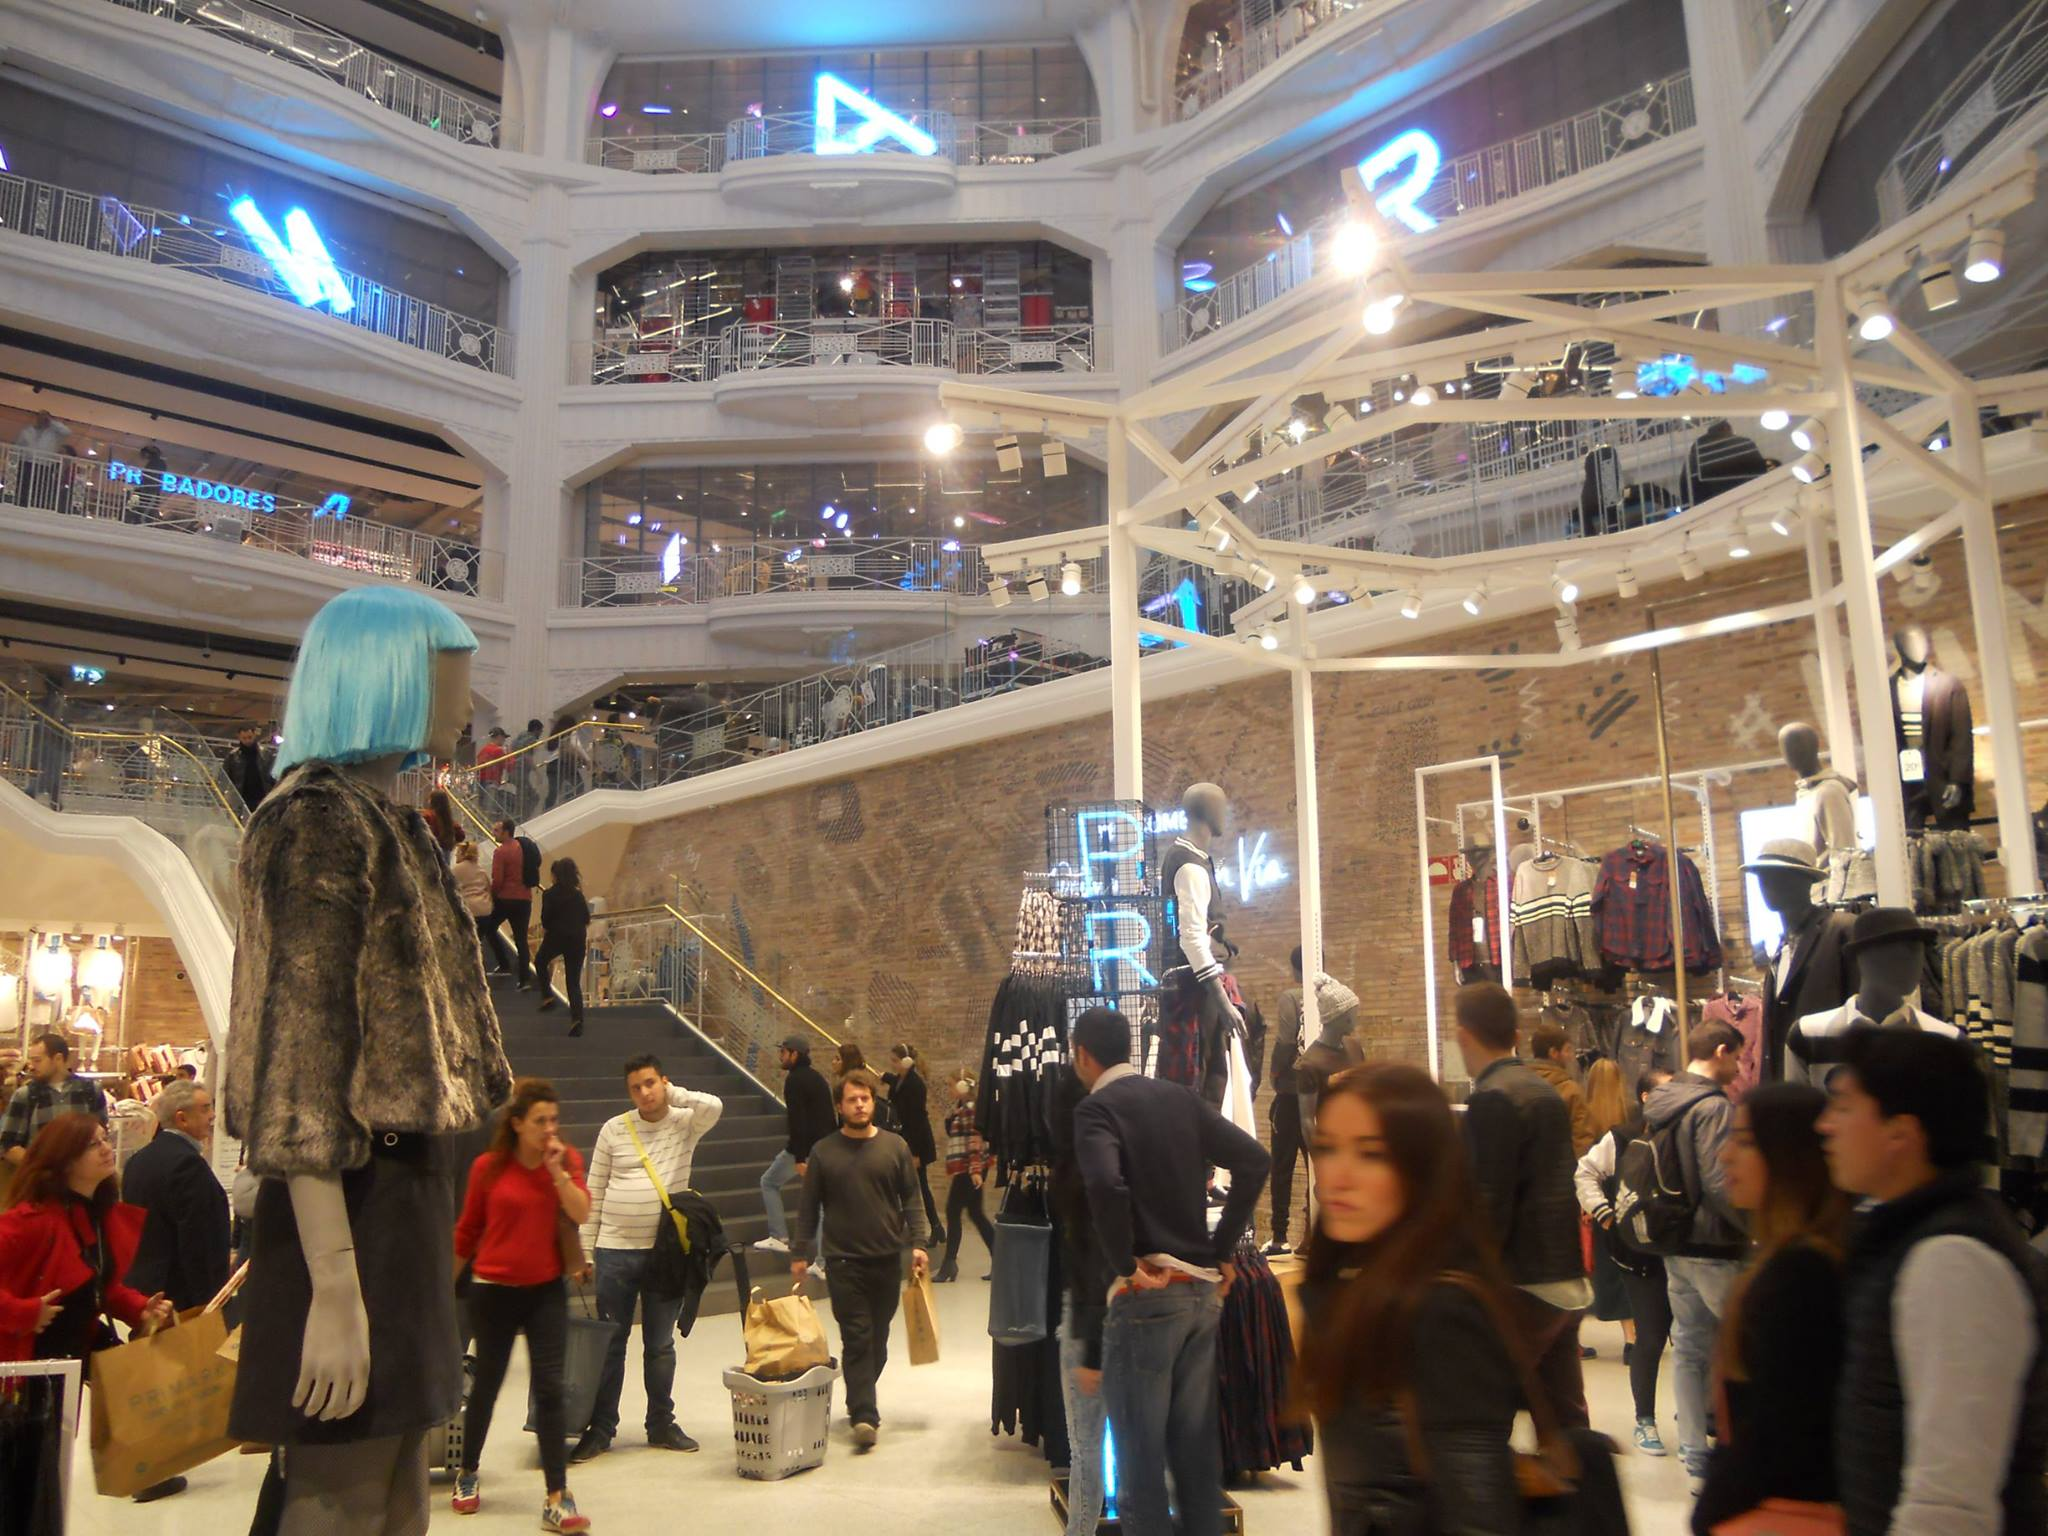 Take a trip down Gran Via in Madrid, and you cannot fail to notice the extraordinary new flagship store from Primark. Follow the Latin crowds of brown paper bag purchasers through the dramatic entrance and catch your breath as you enter the central atrium with its staggering vistas up through the multiple balconies and into the dome of the heavens, the pinnacle of Primark's pre-eminence.